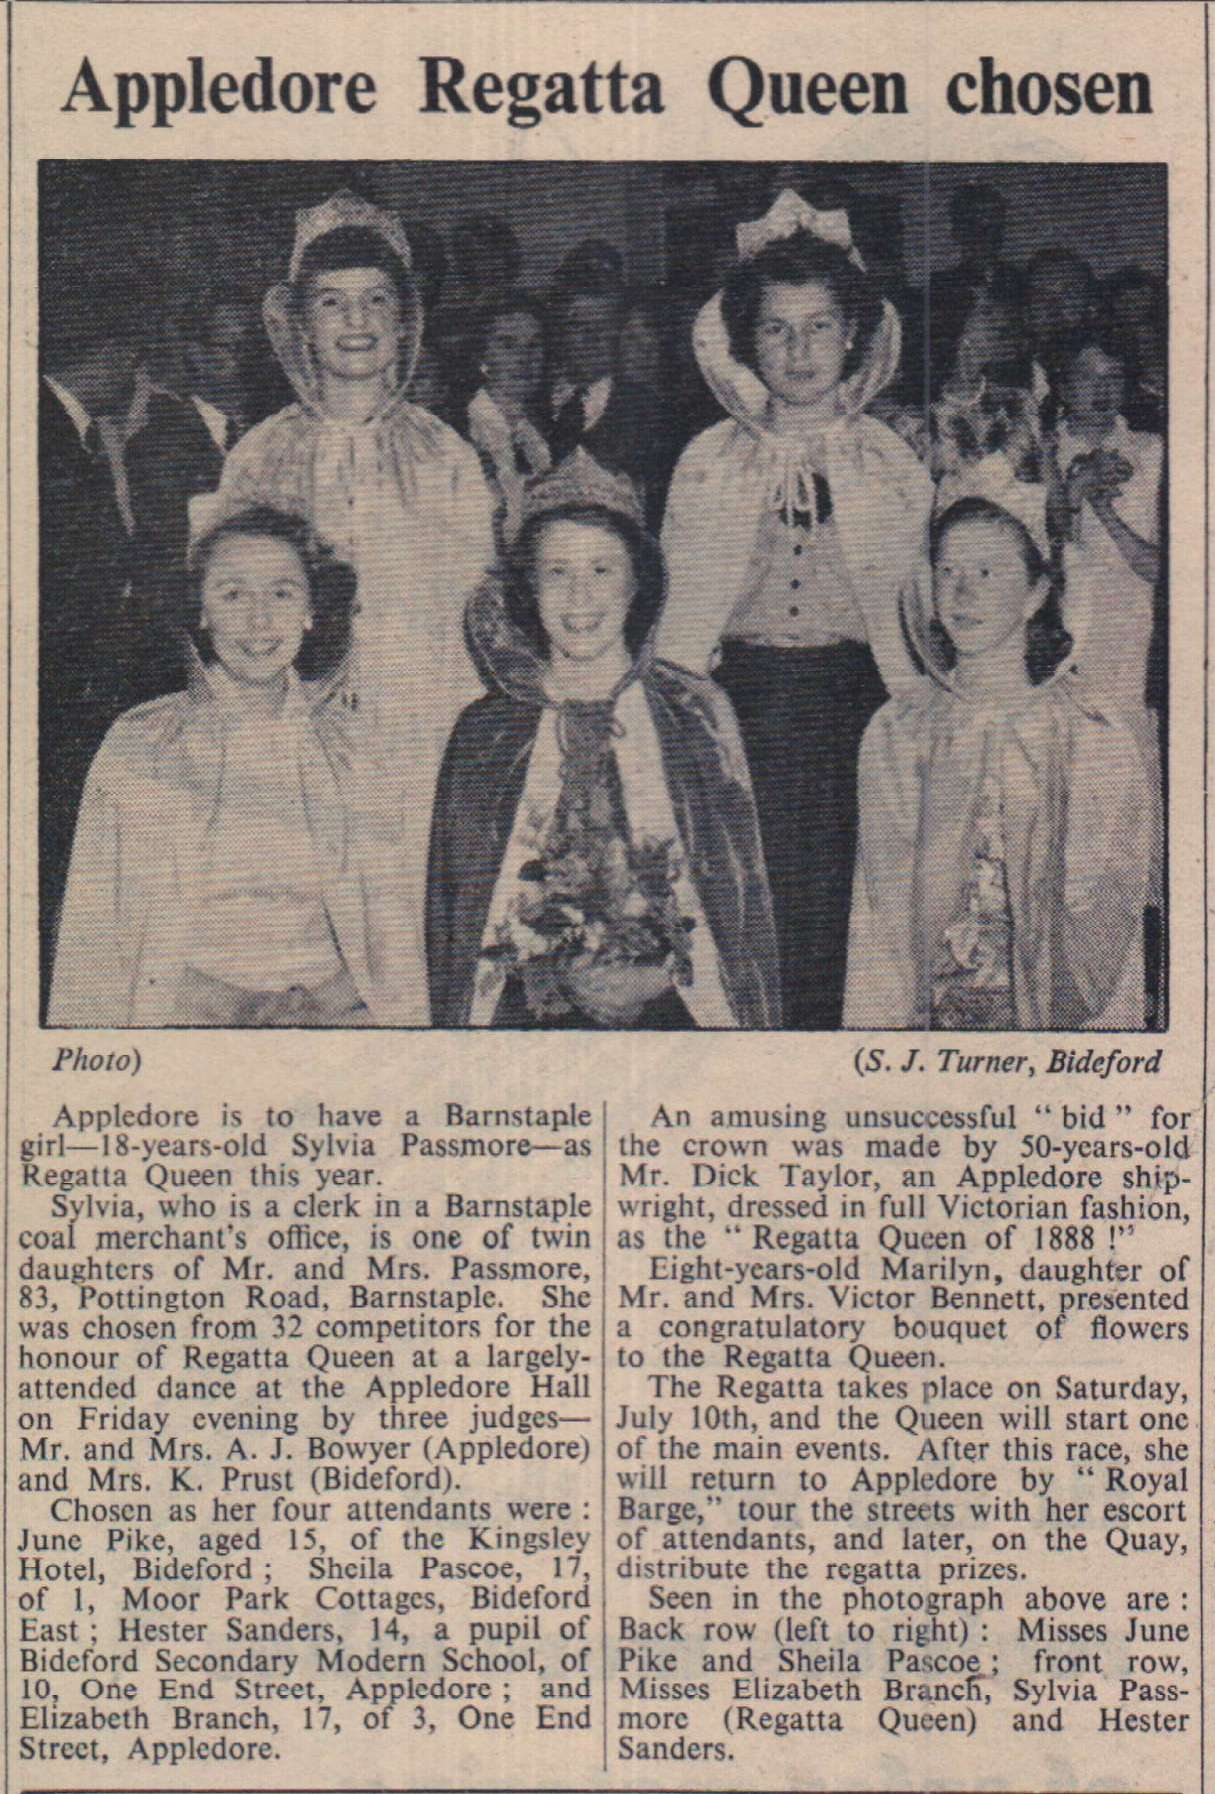 11.6.1954 Appledore Regatta Queen